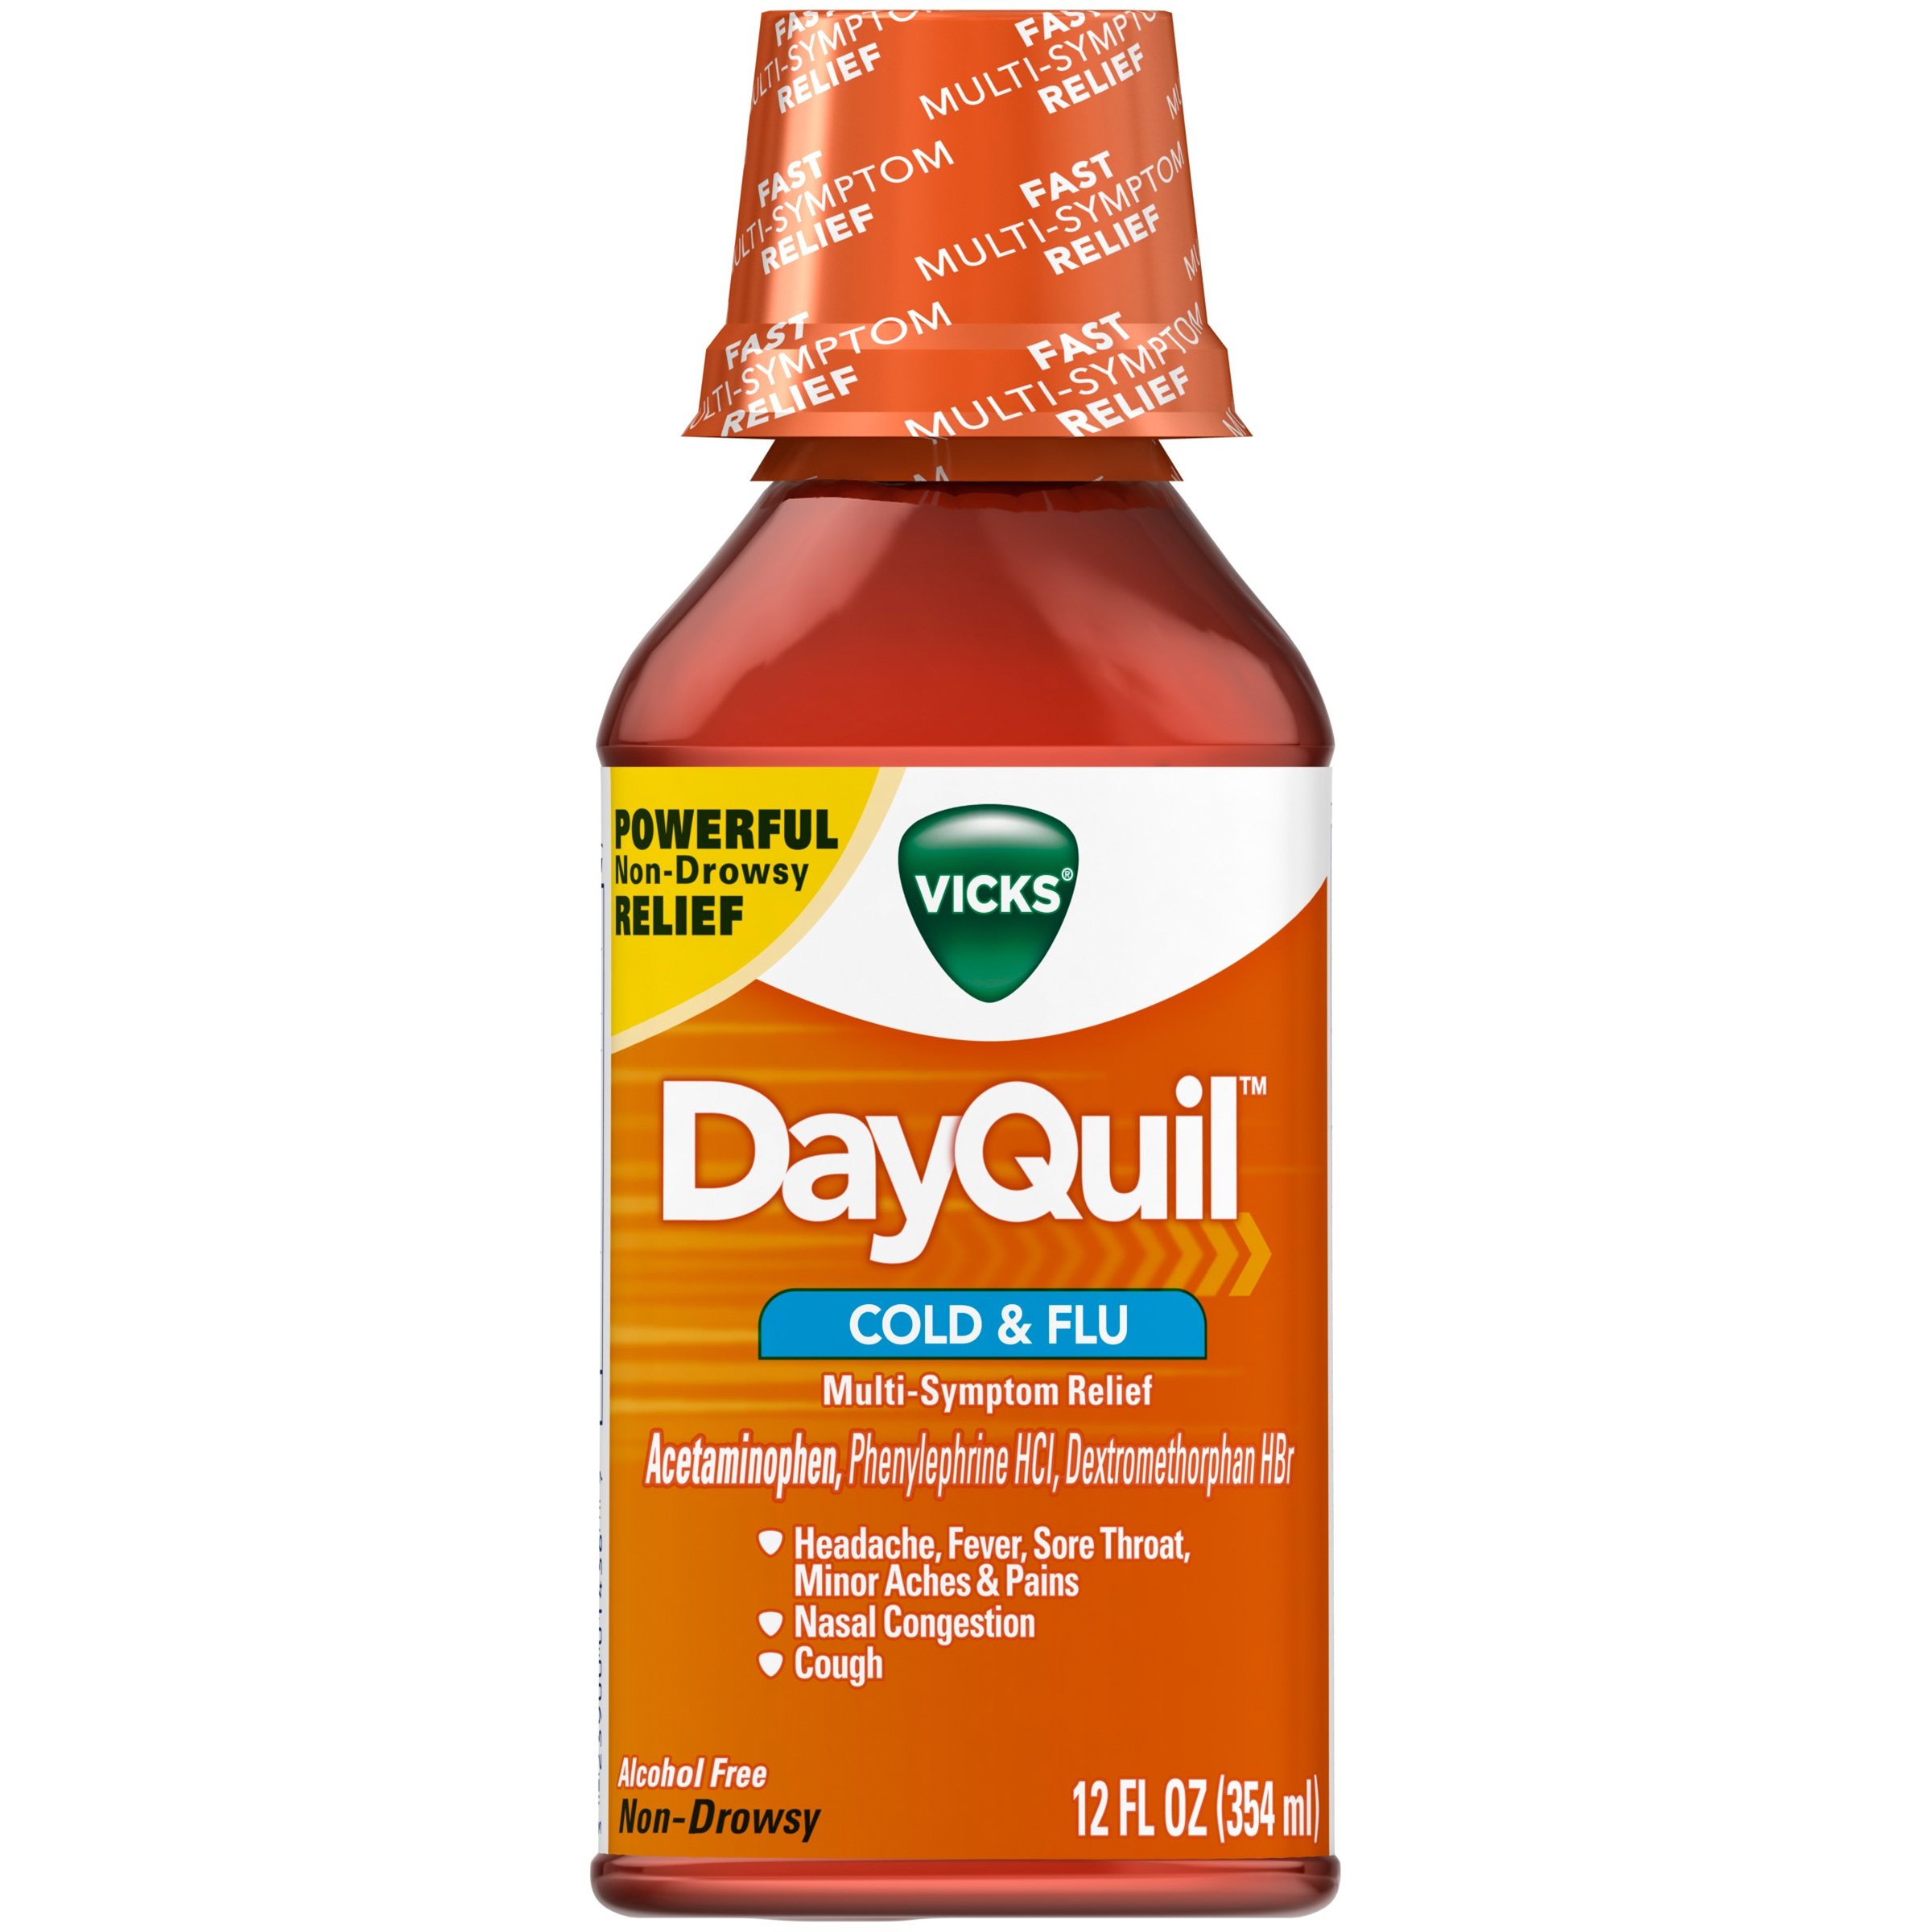 Vicks DayQuil Alcohol Free Non-Drowsy Cold & Flu Liquid 12 fl. oz. Bottle